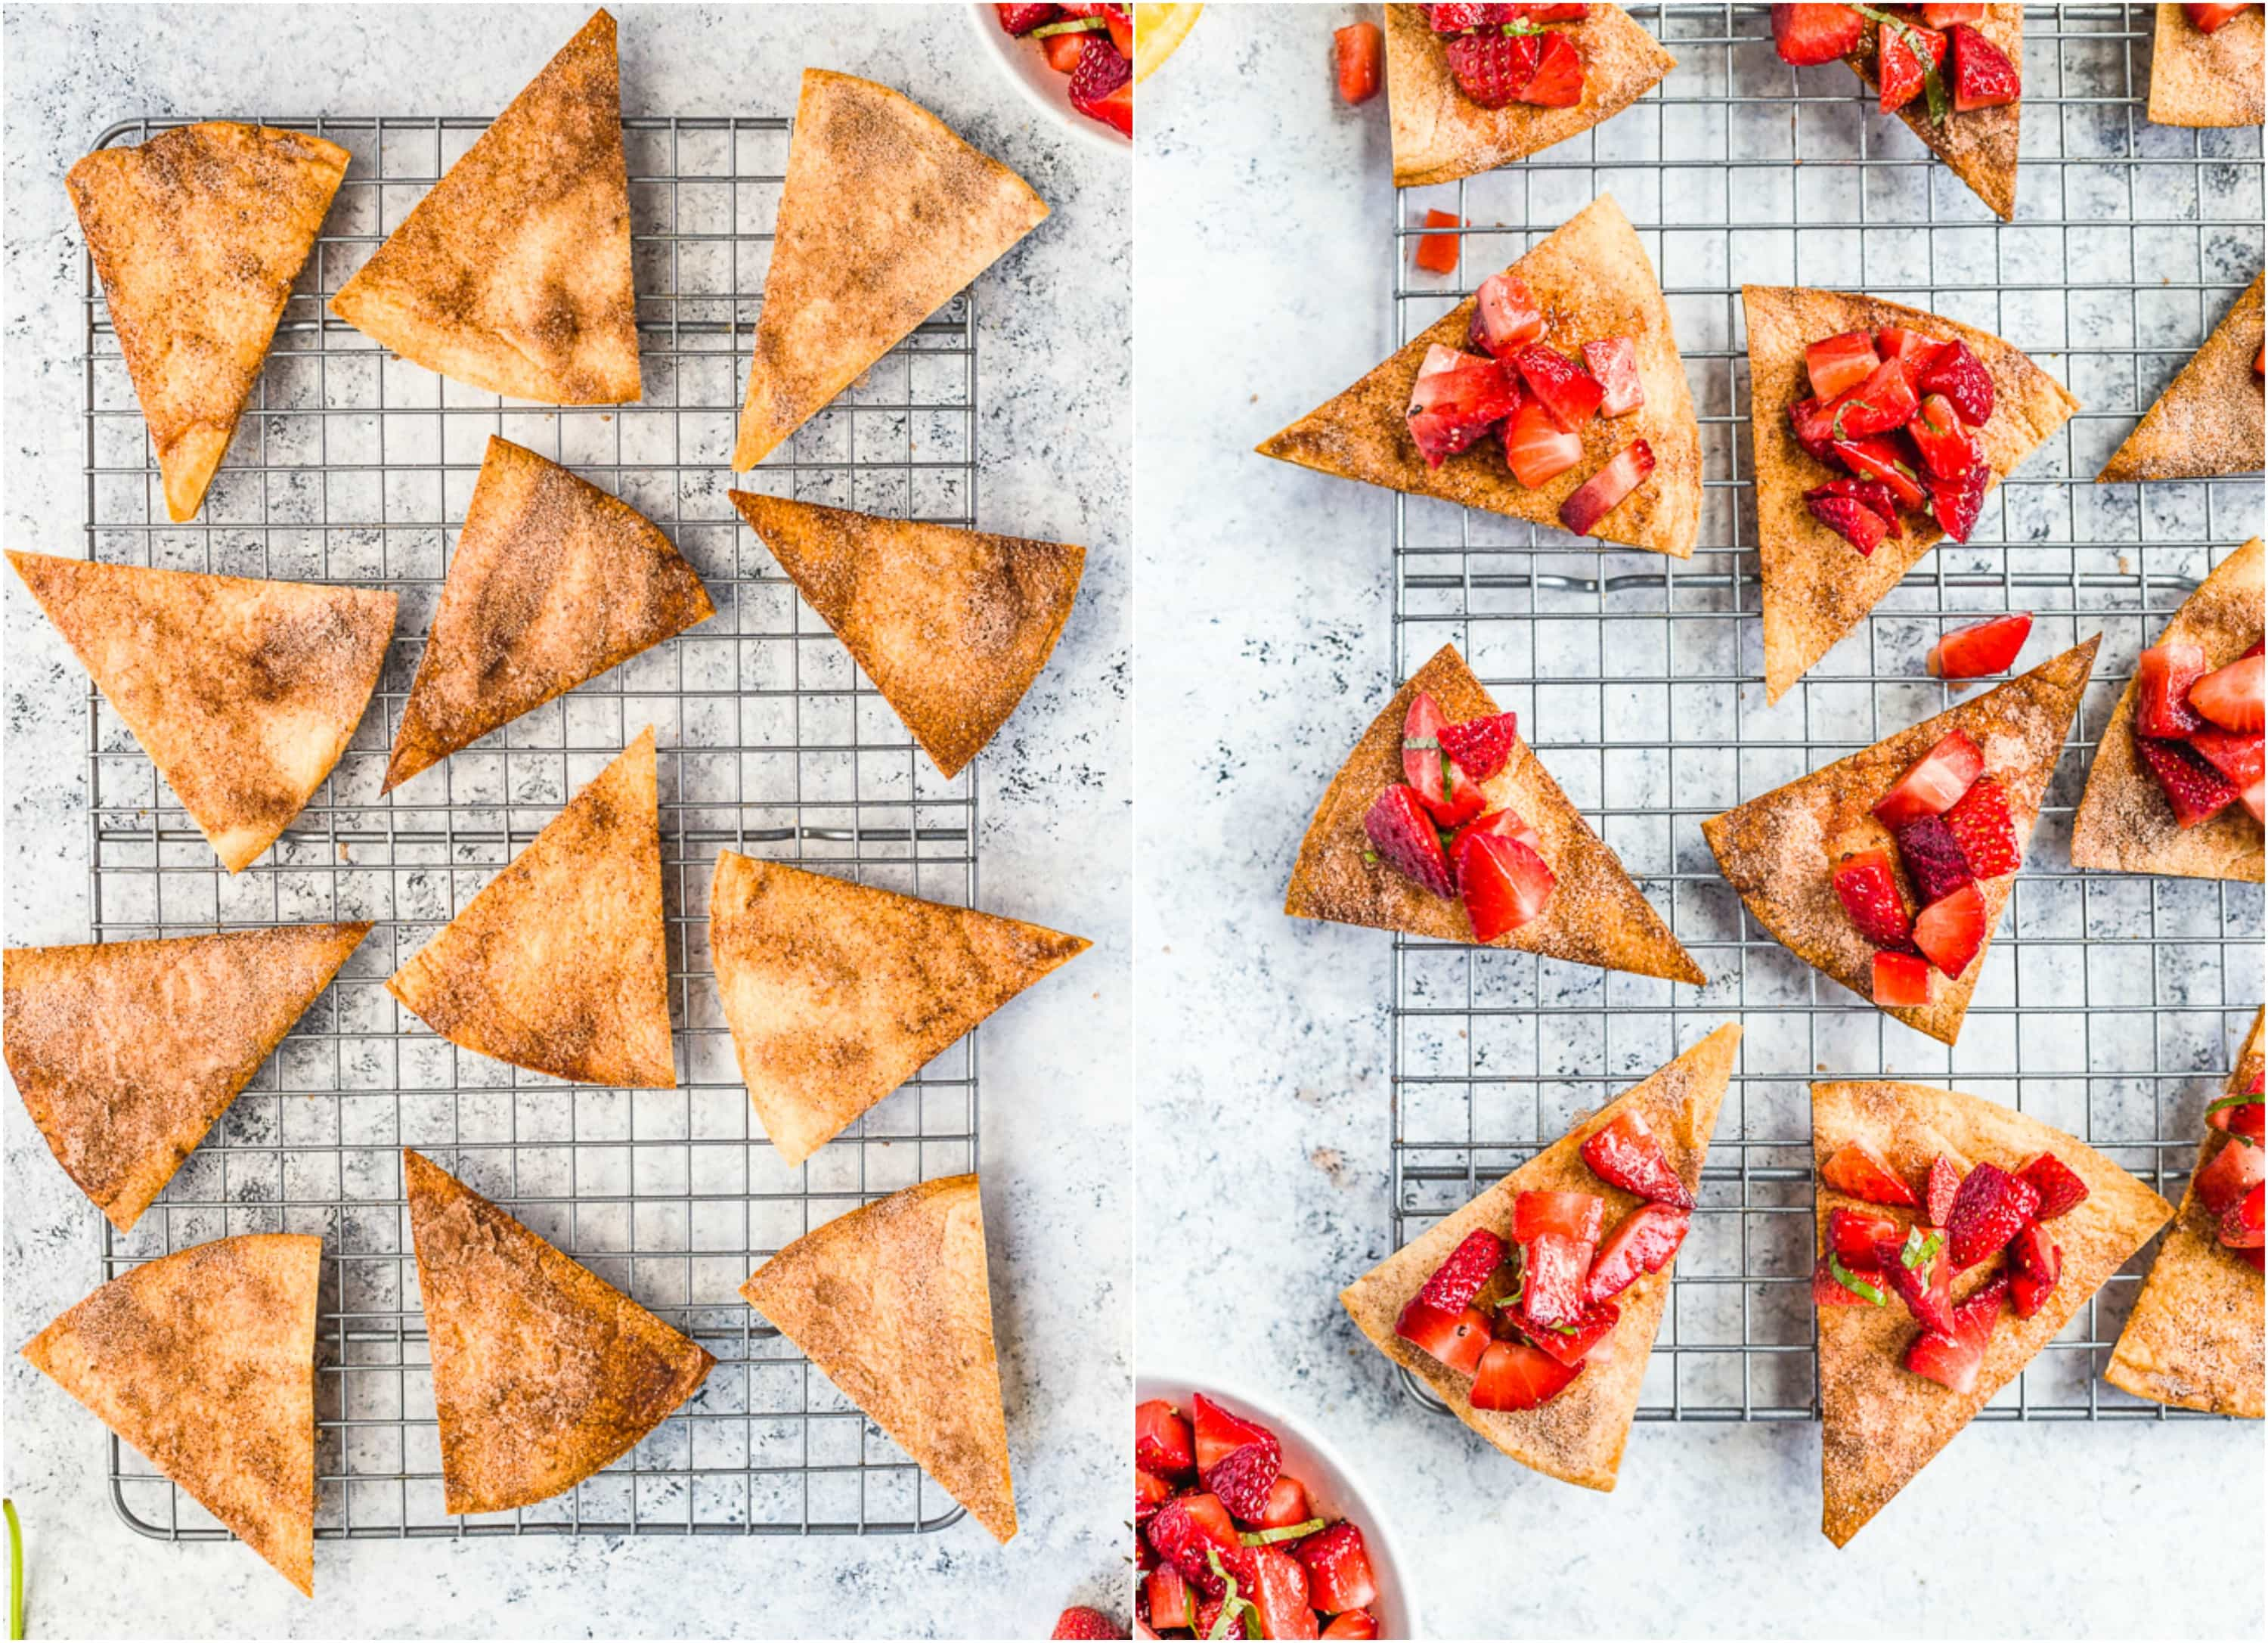 STRAWBERRY BASIL SALSA WITH CINNAMON SUGAR CHIPS is such a fun BBQ treat, perfect for any party! Healthy and so delicious.